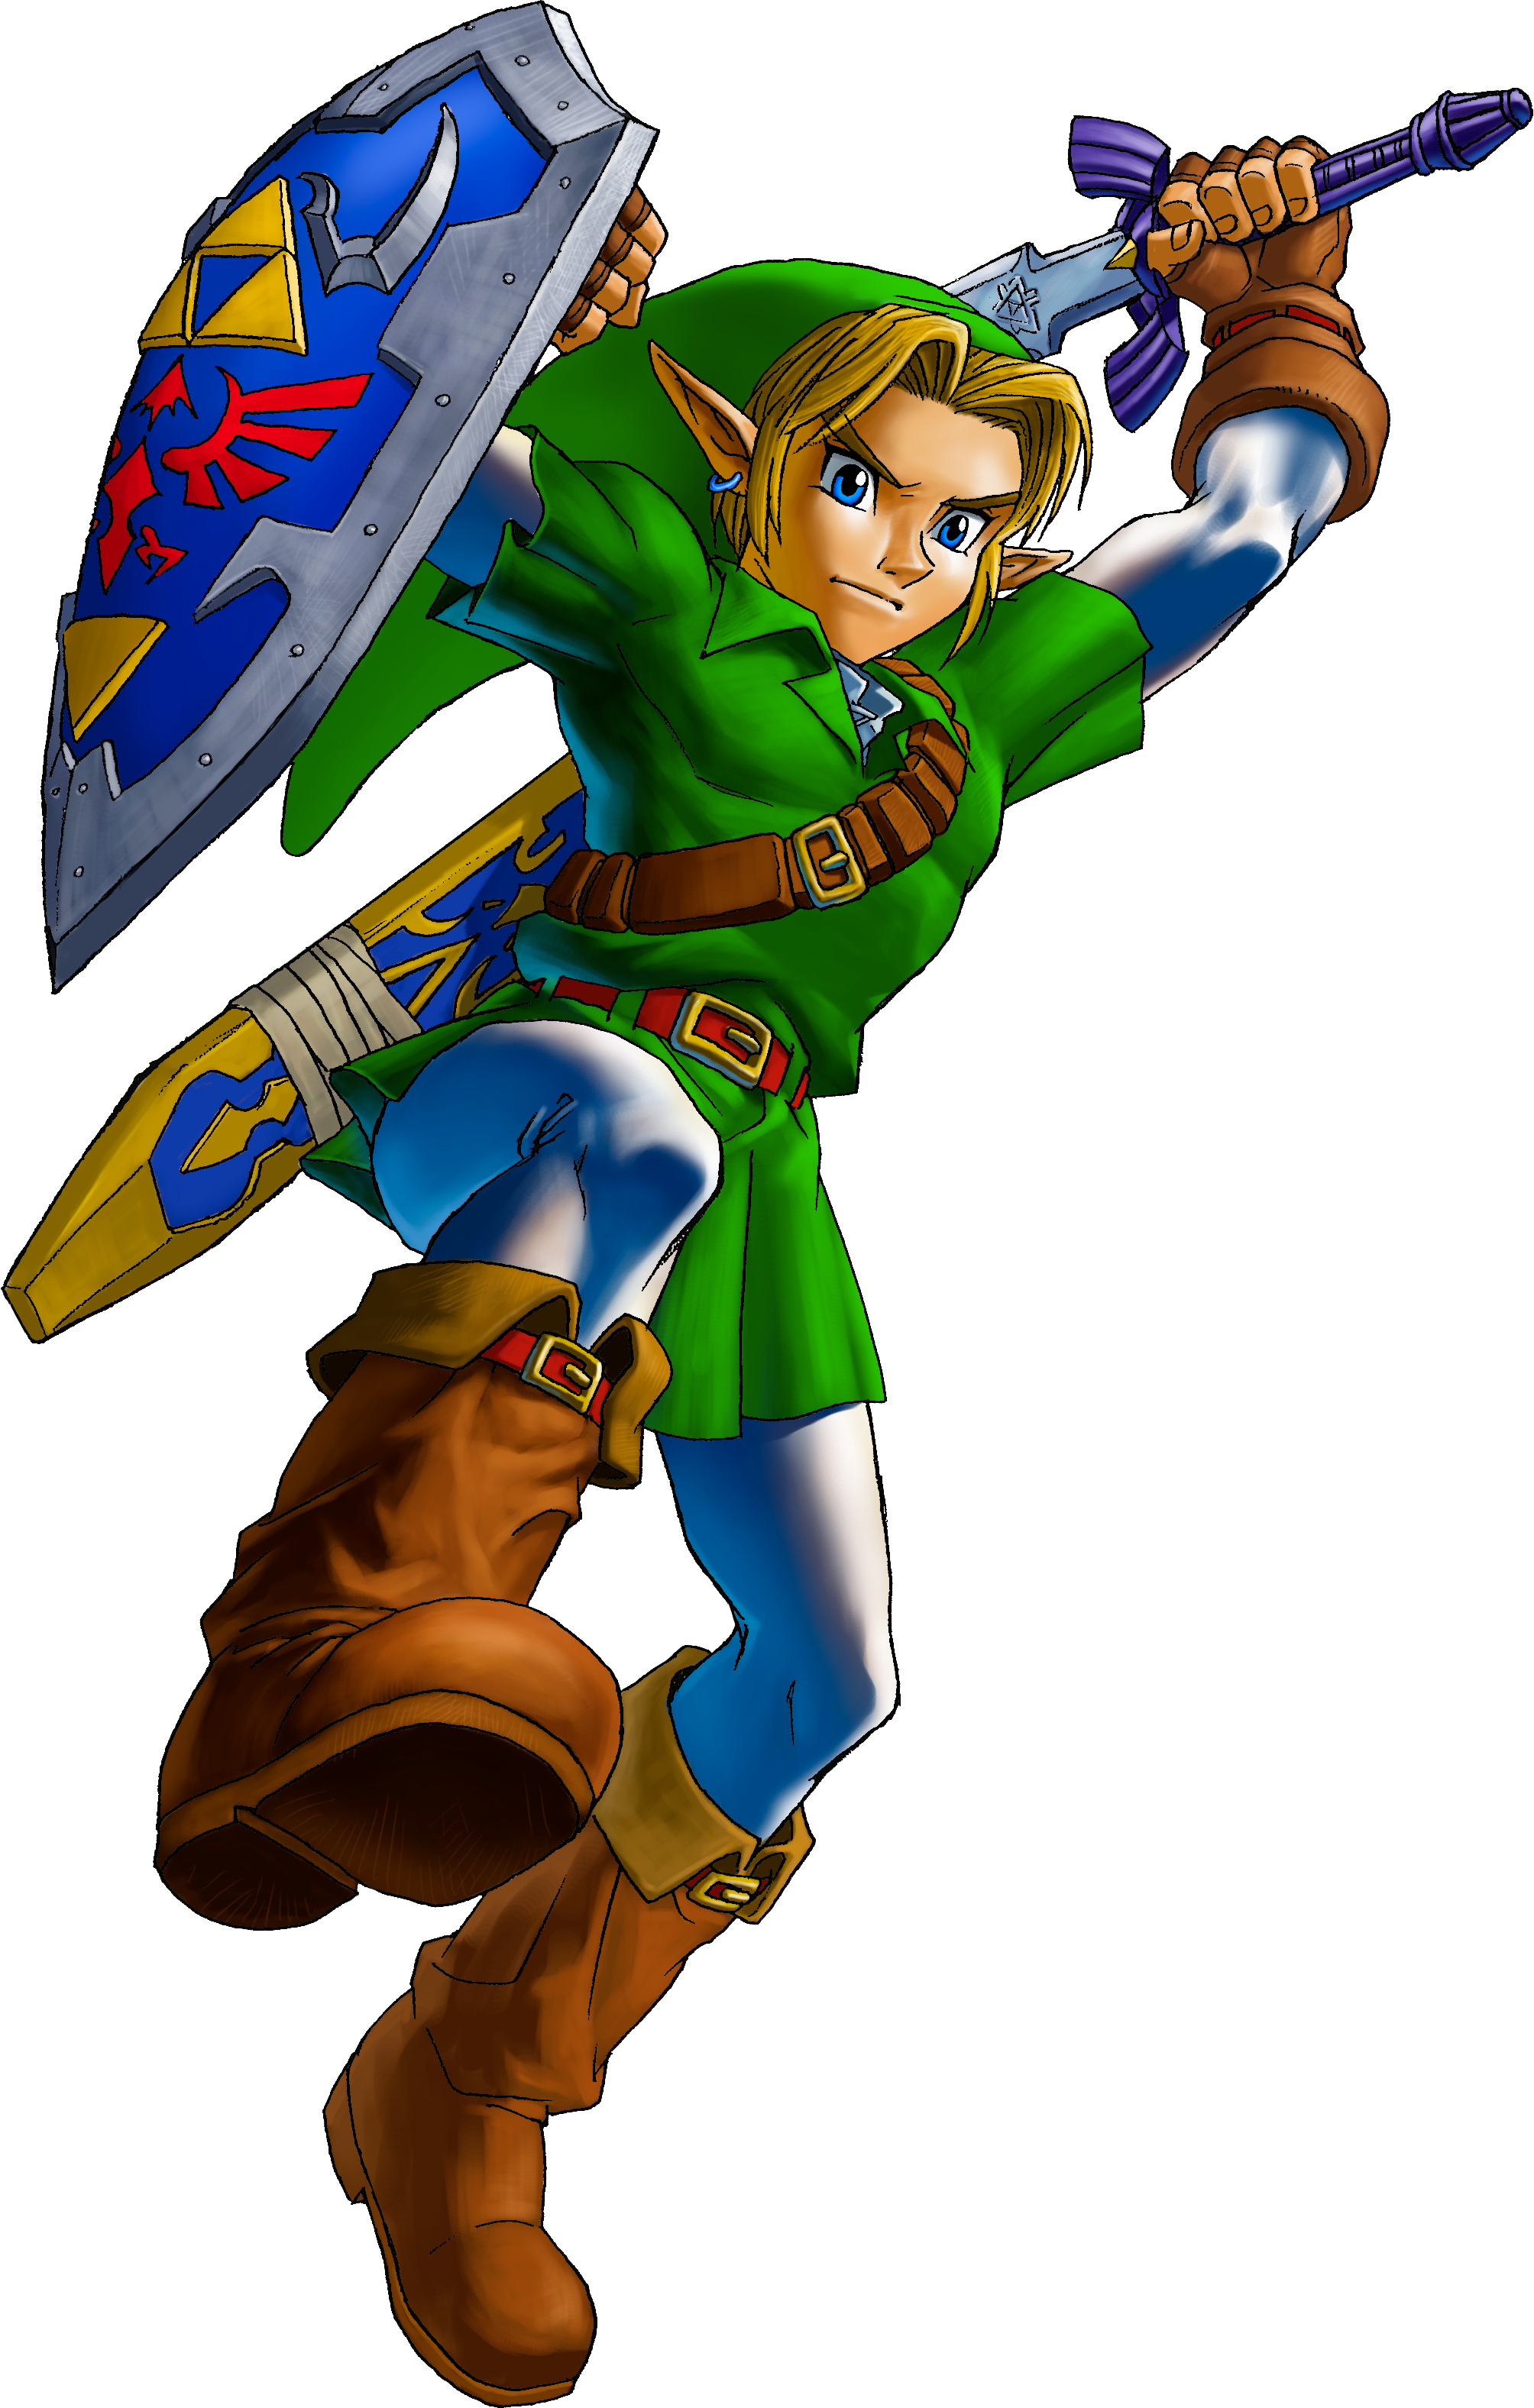 Ocarina of Time | Zeldapedia | Fandom powered by Wikia